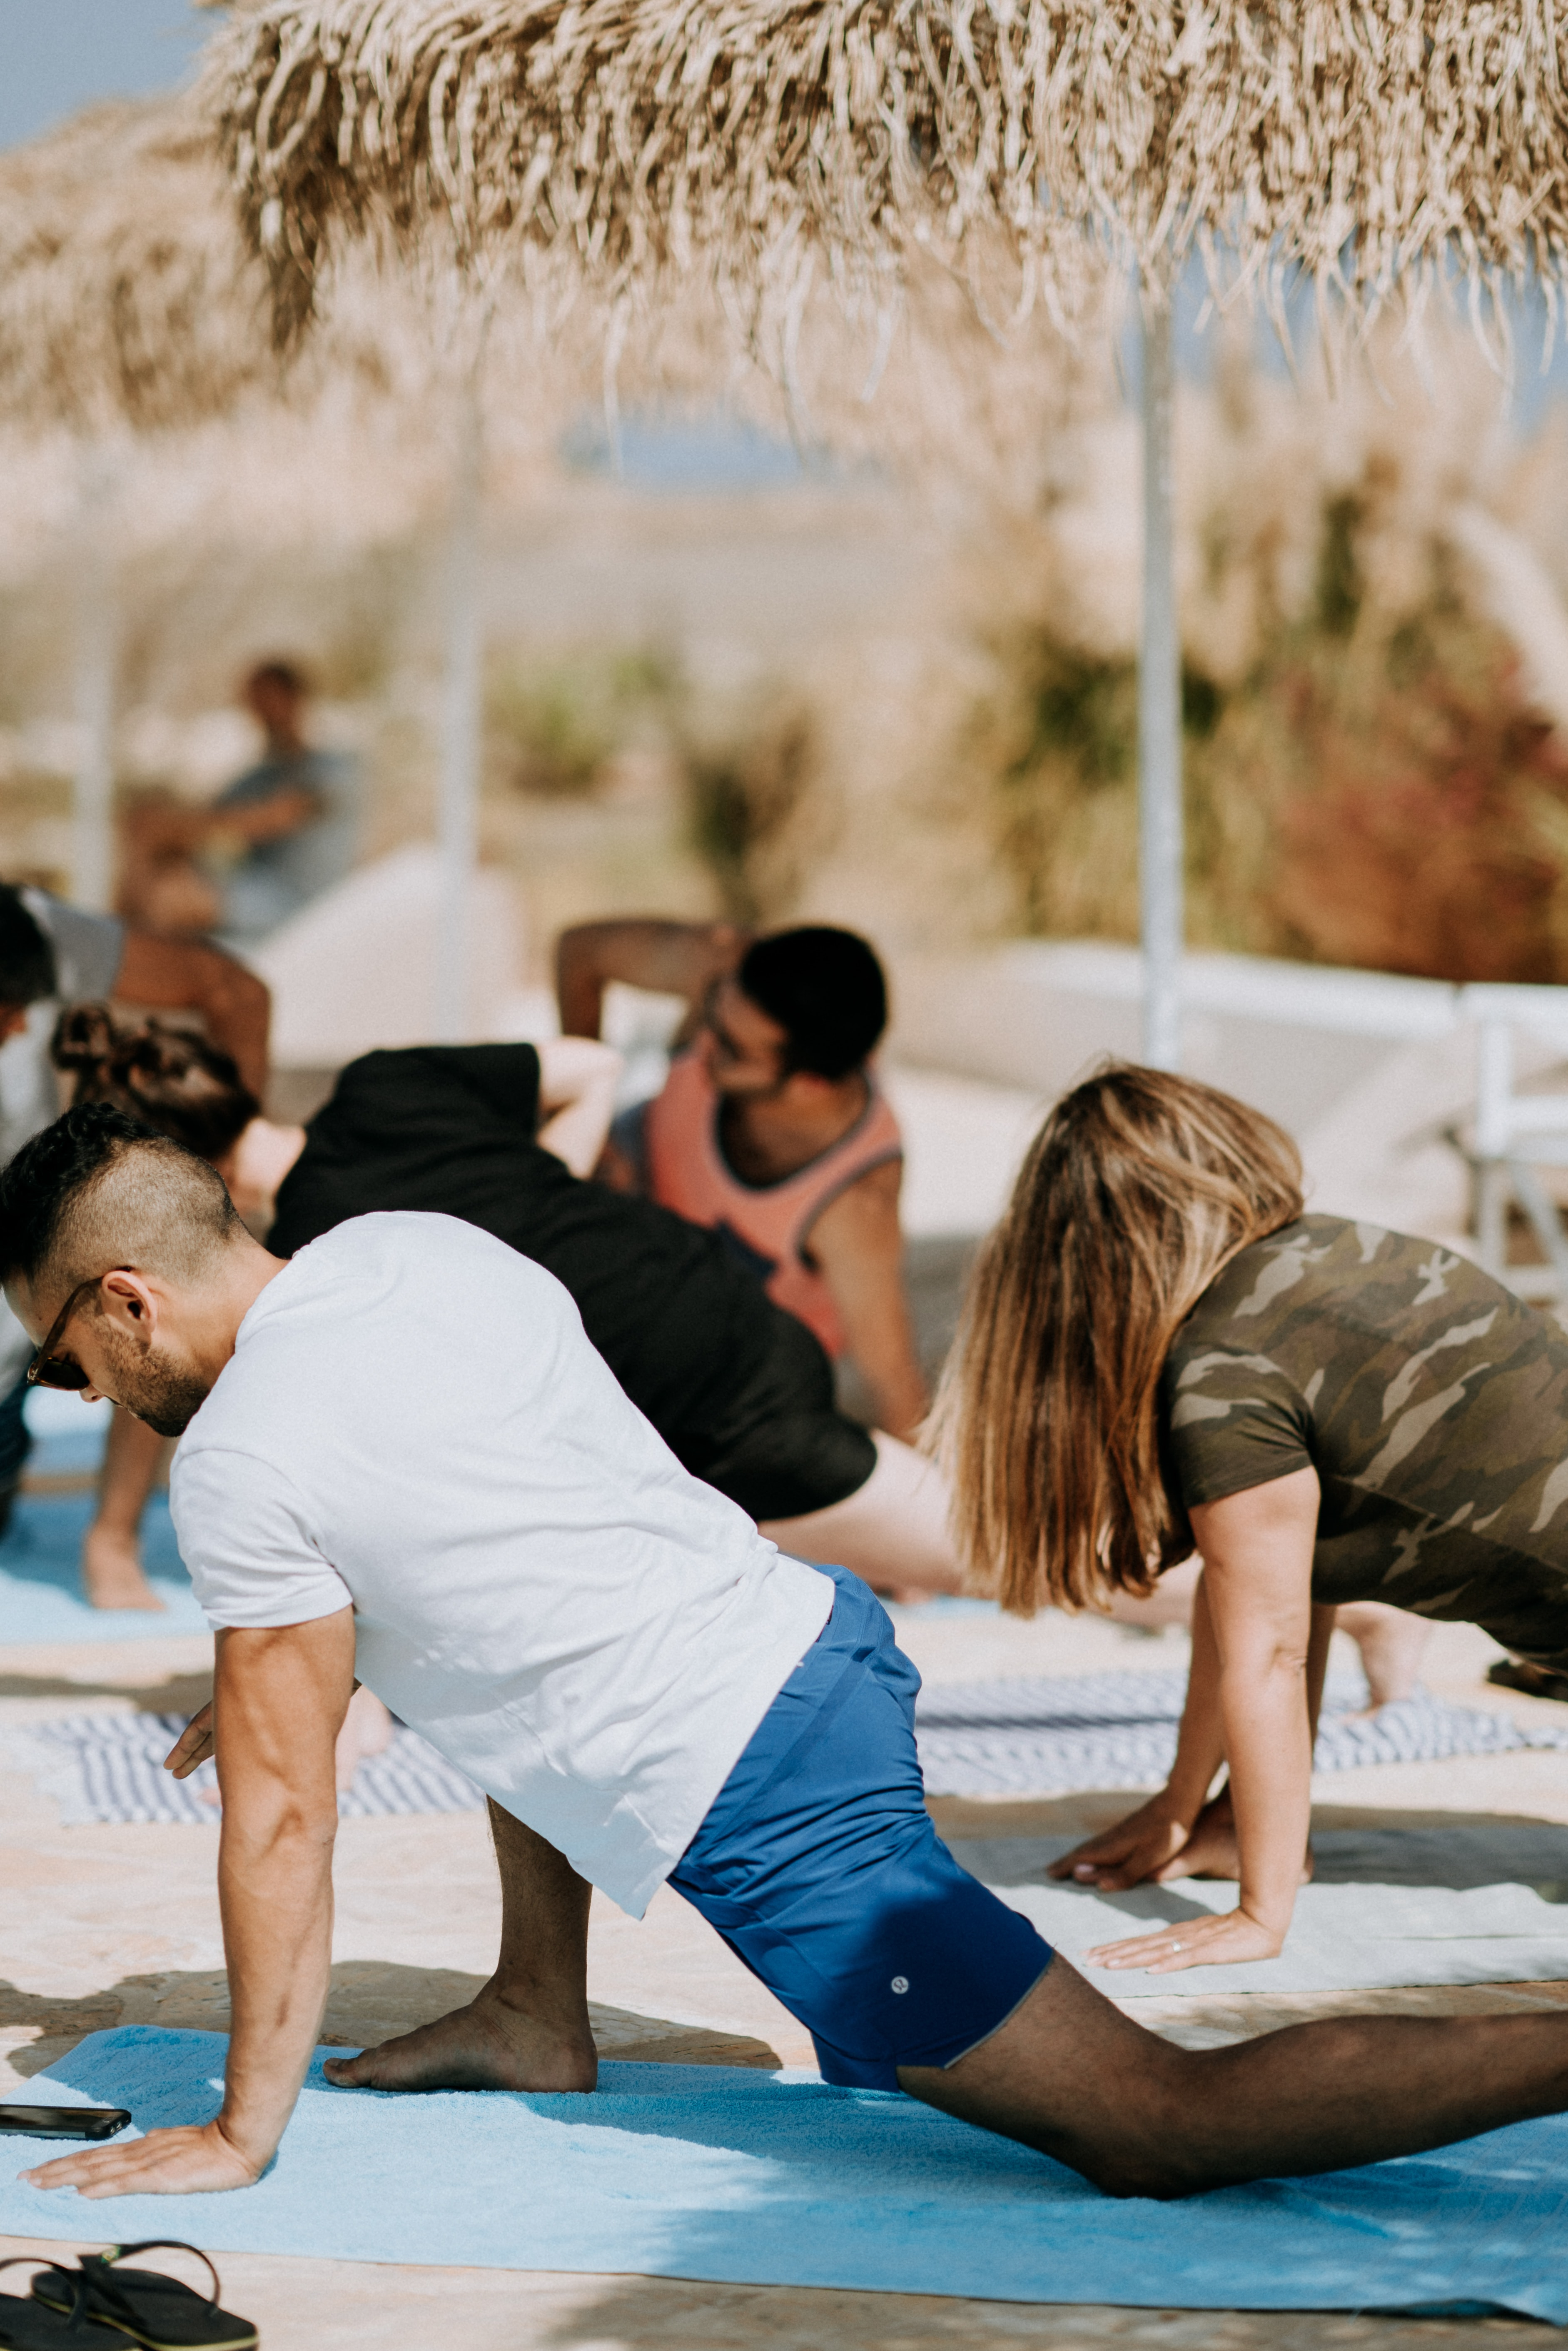 people stretching their bodies during daytime